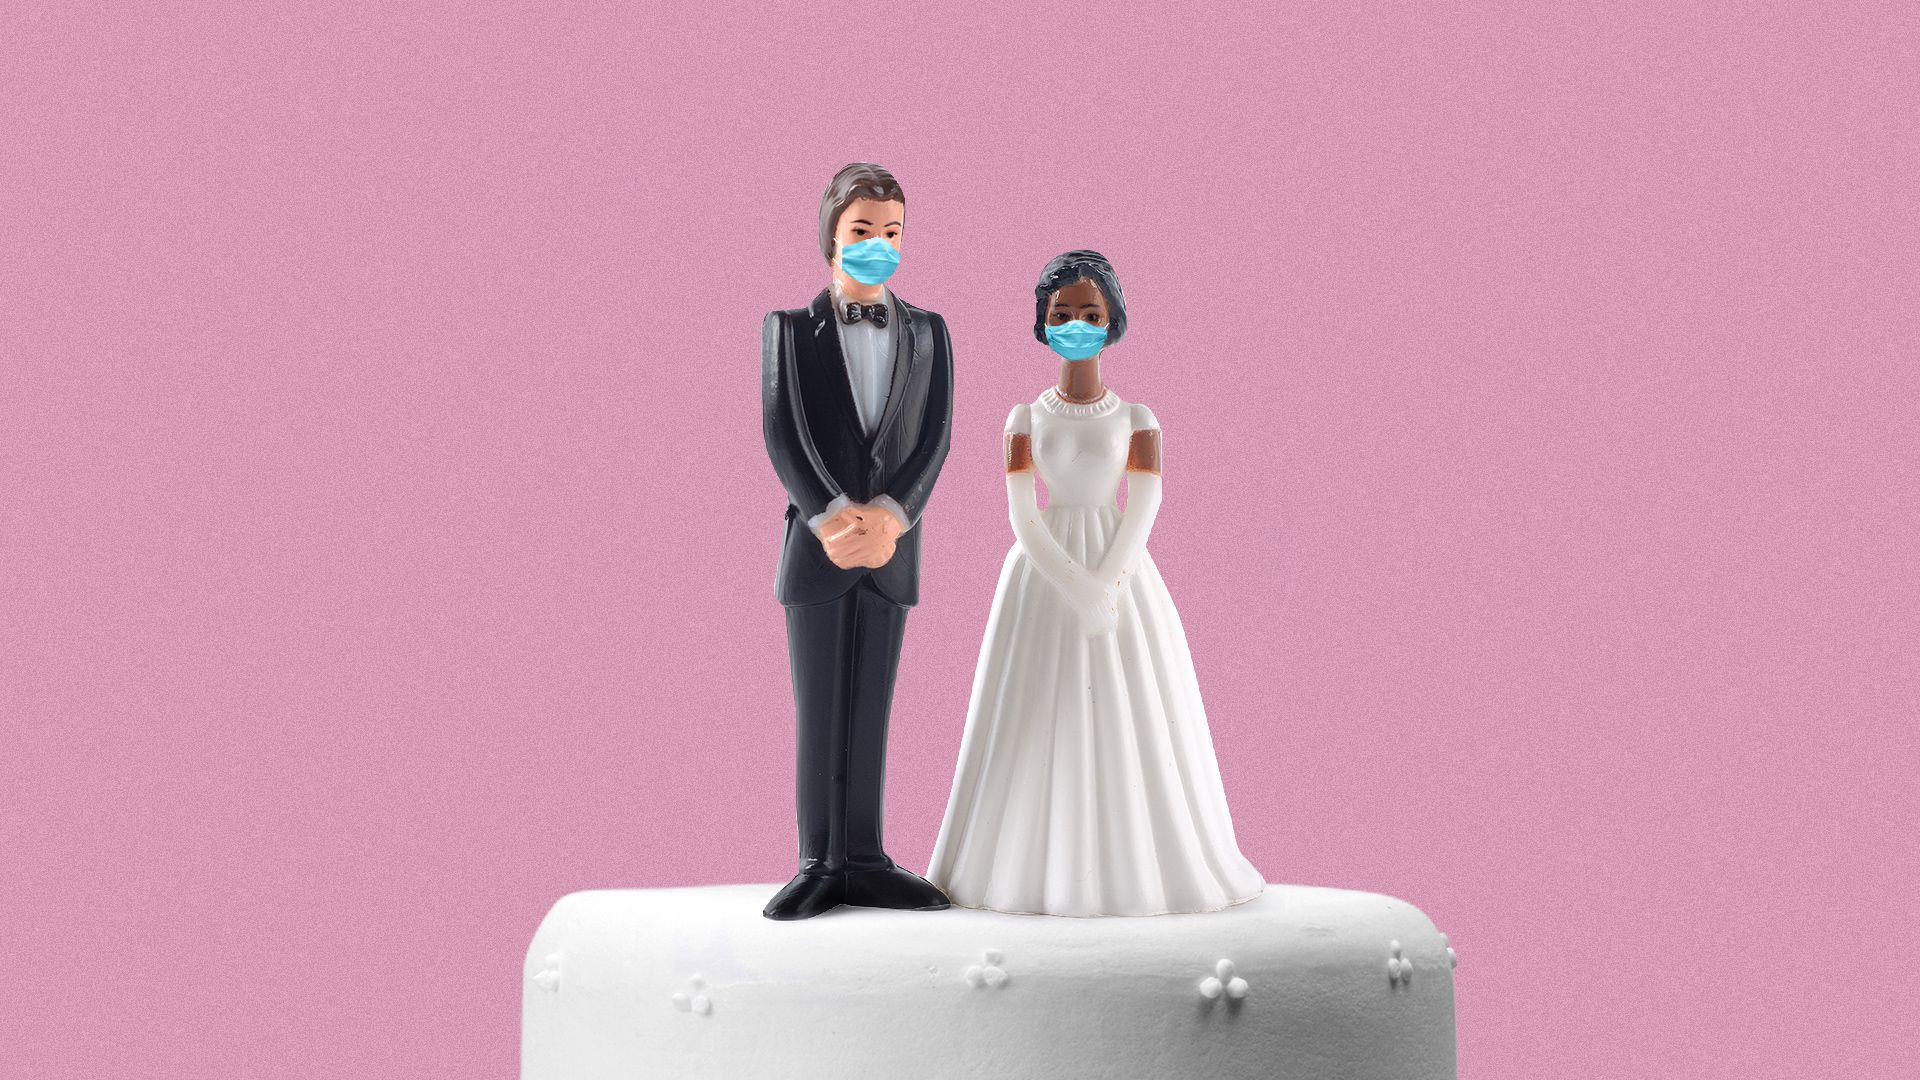 The coronavirus takes the ring out of wedding bells